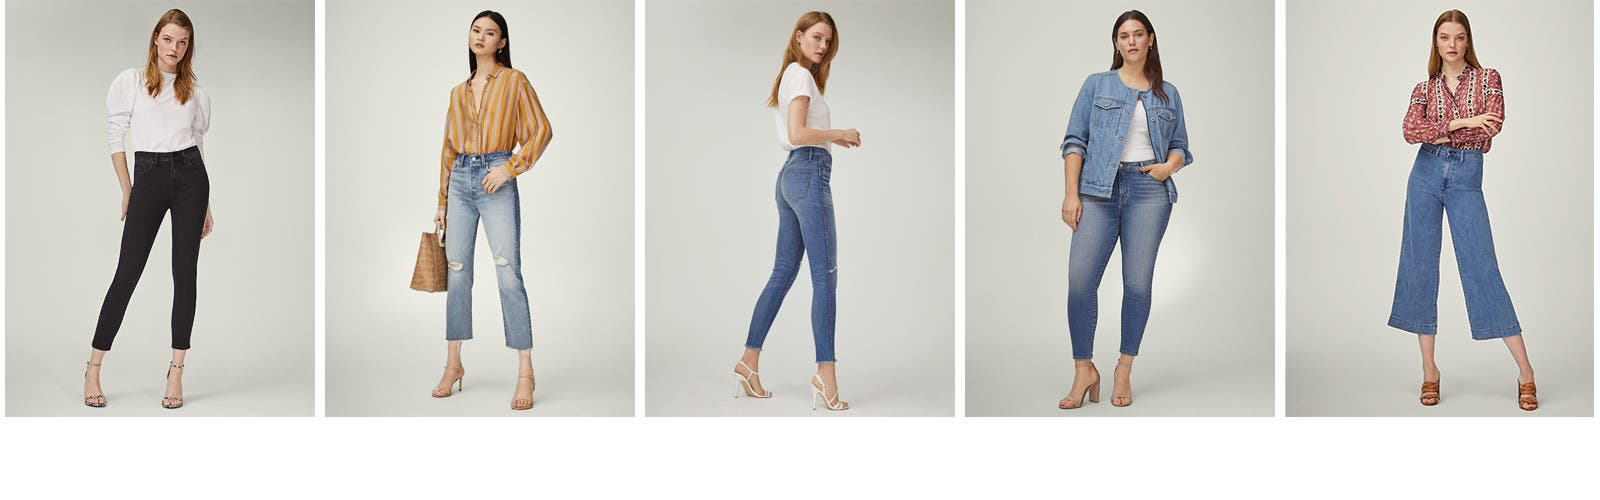 41d16df4da6 Women's Jeans & Denim | Nordstrom